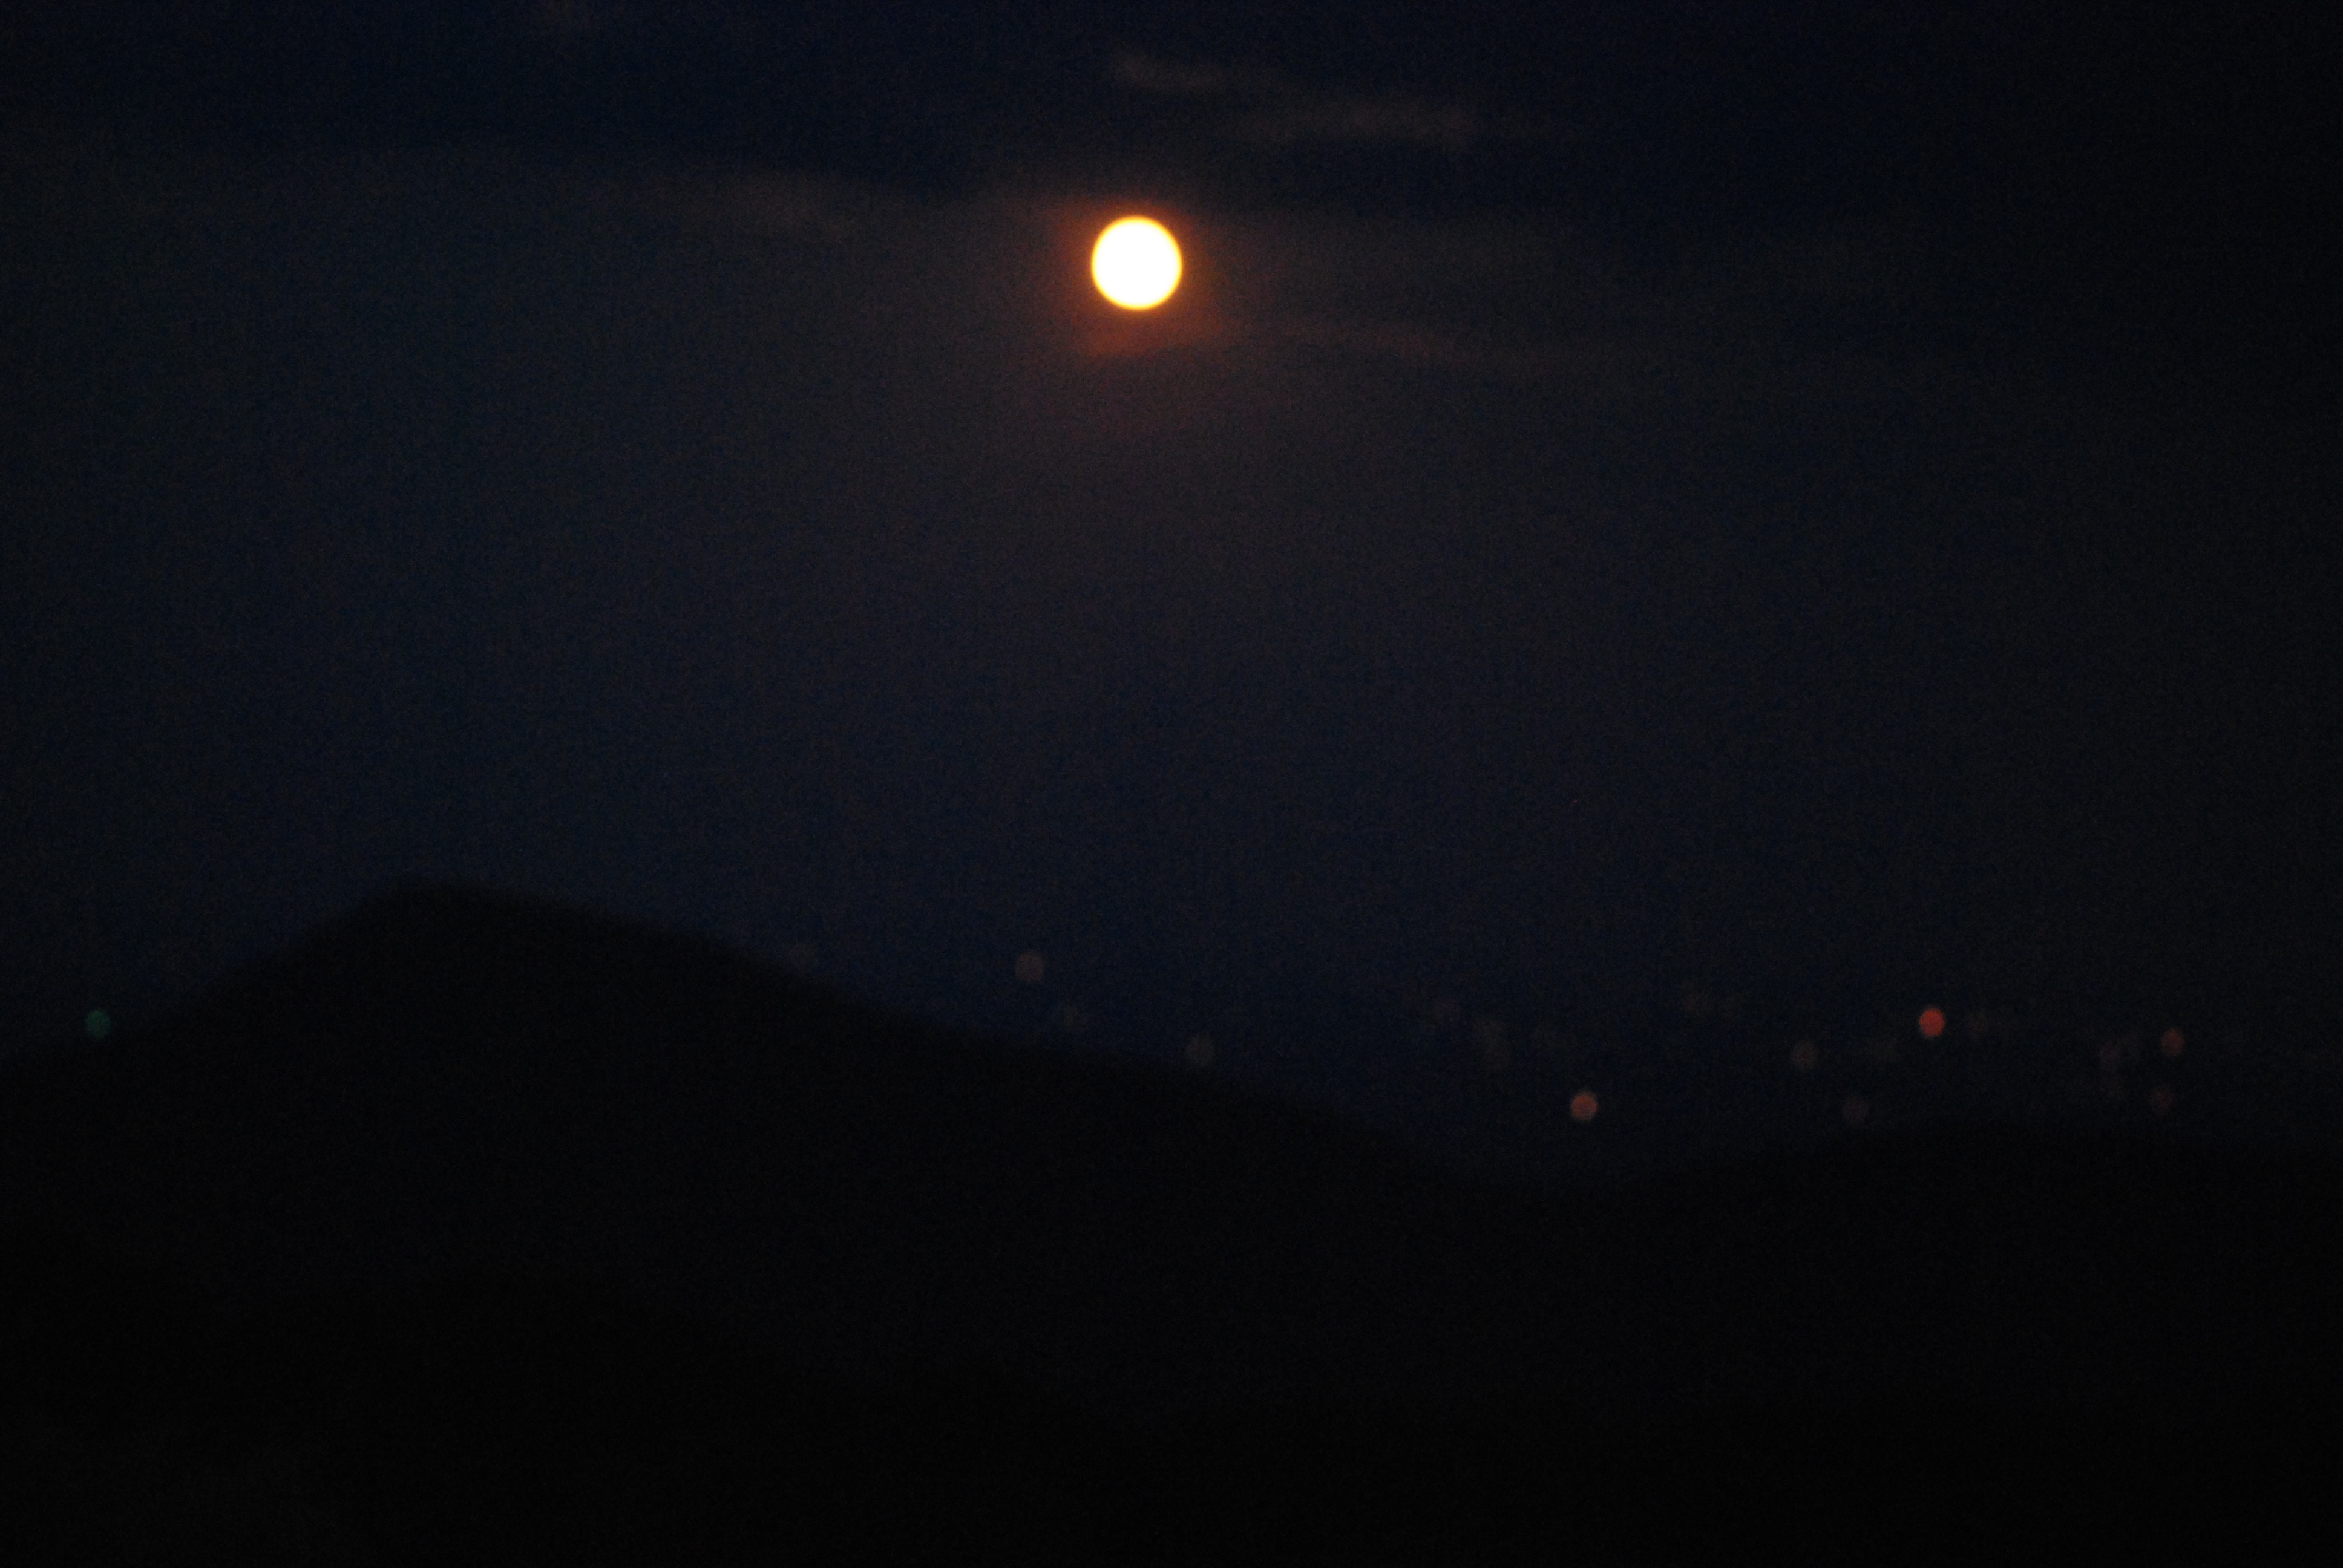 Full Moon on a Hazy Night in the Appalachians